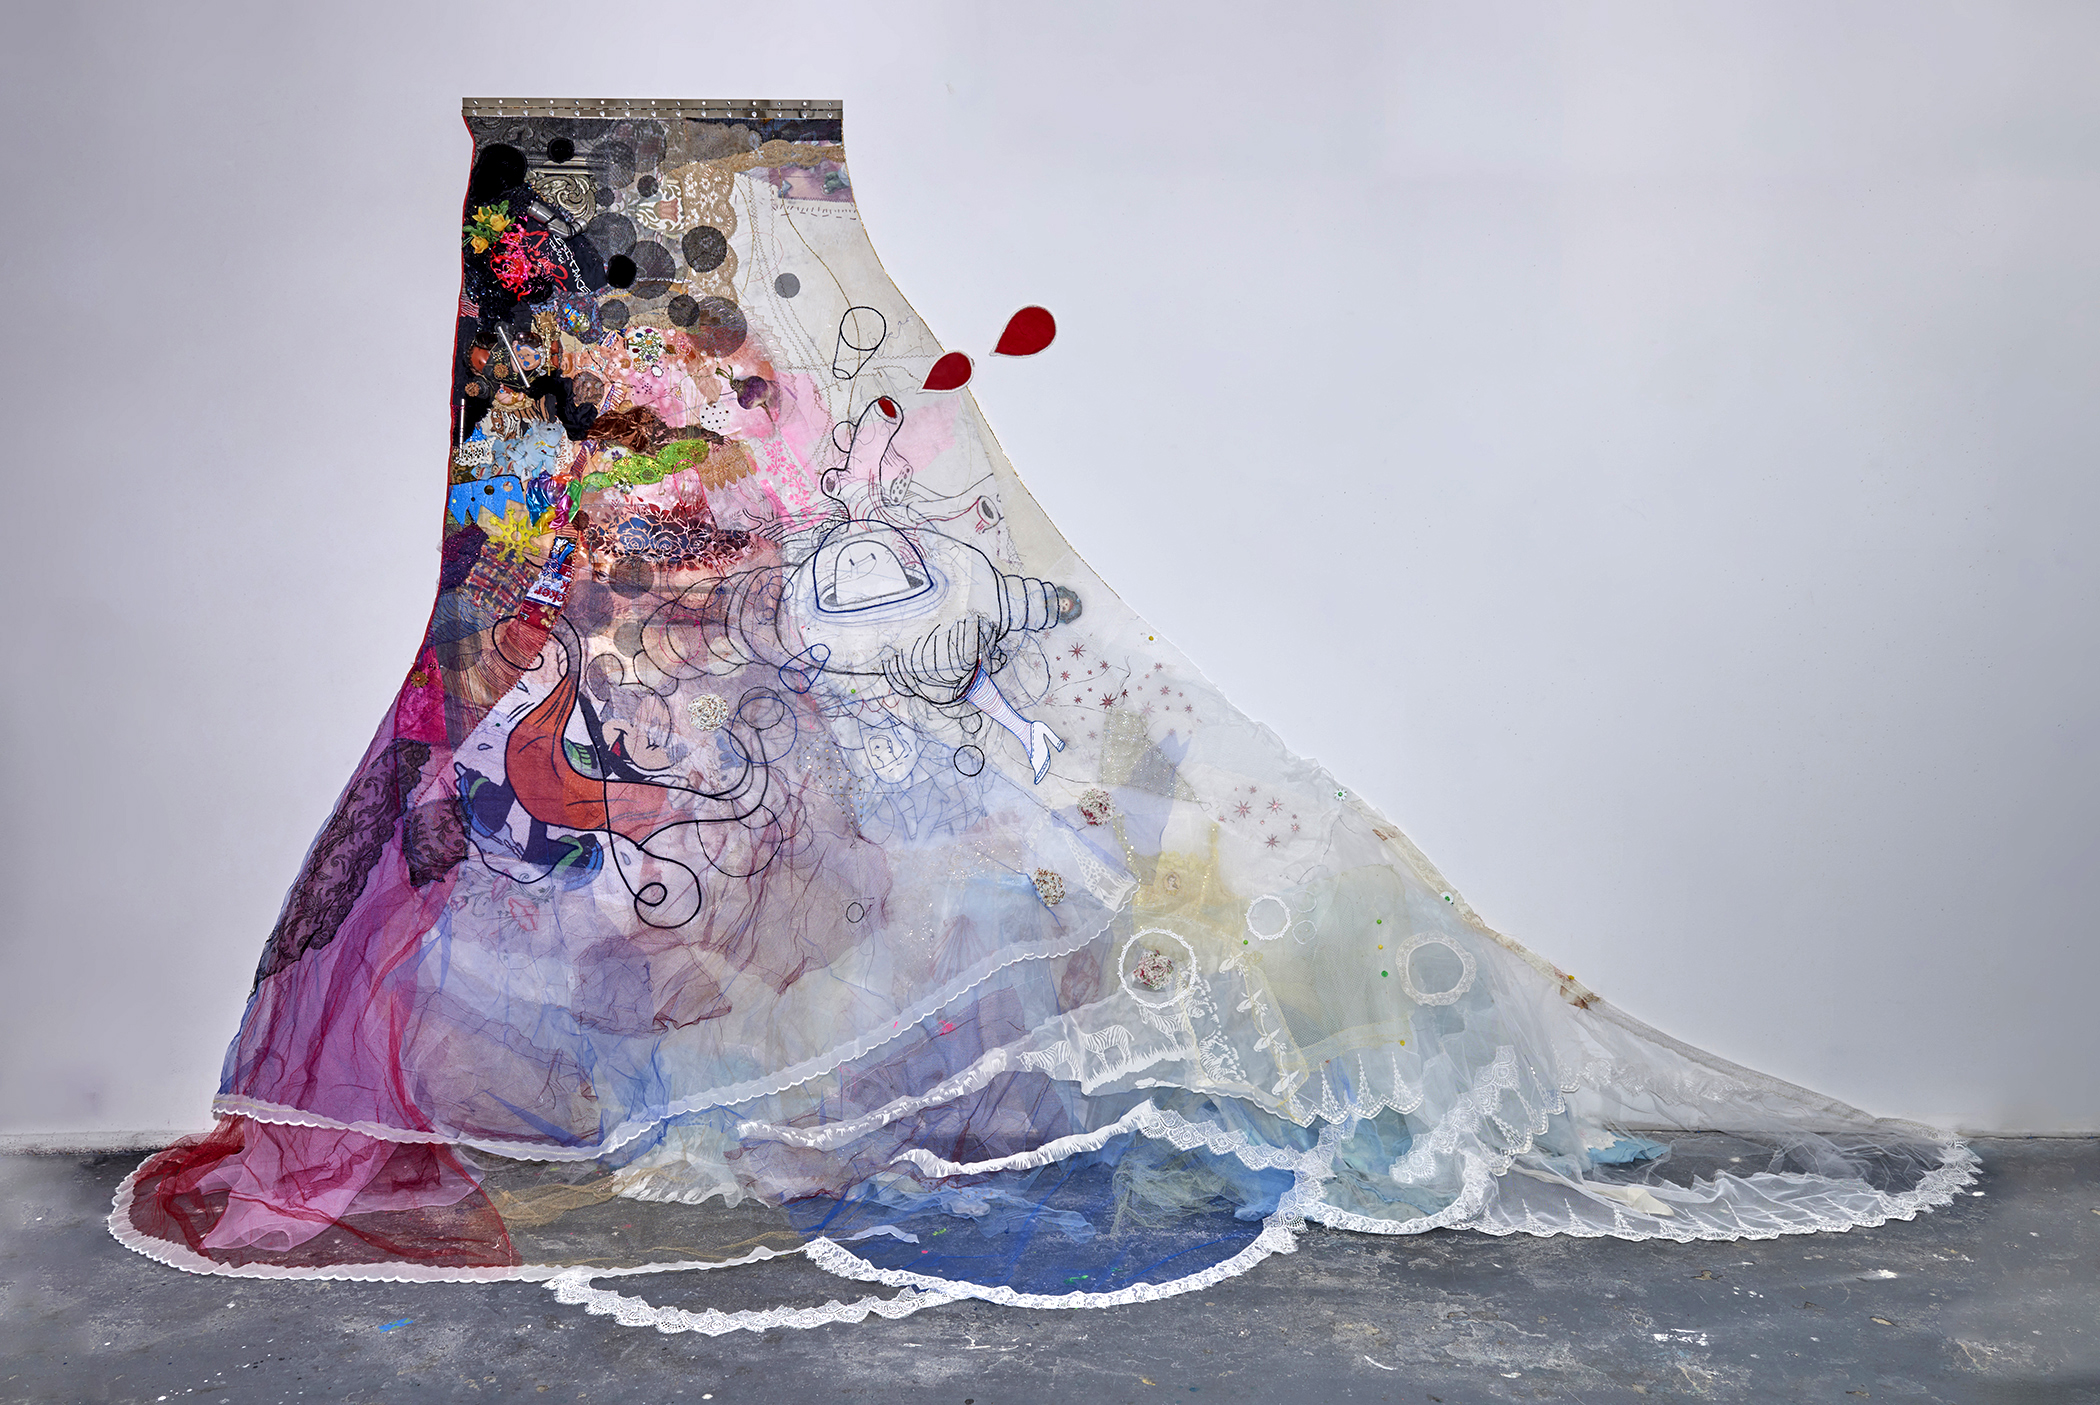 """Toxic Frock :      This Changes Everything by Naomi Klein    2016,84"""" x 156"""" x 10"""", oil paint, gouache, acrylic paint, fabric paint, found objects (including: piano hinge, metal pipe, wind chimes, socks, pot holder, seed pods, towel, trophy, jewelry), thread, fabric & trim on canvas"""